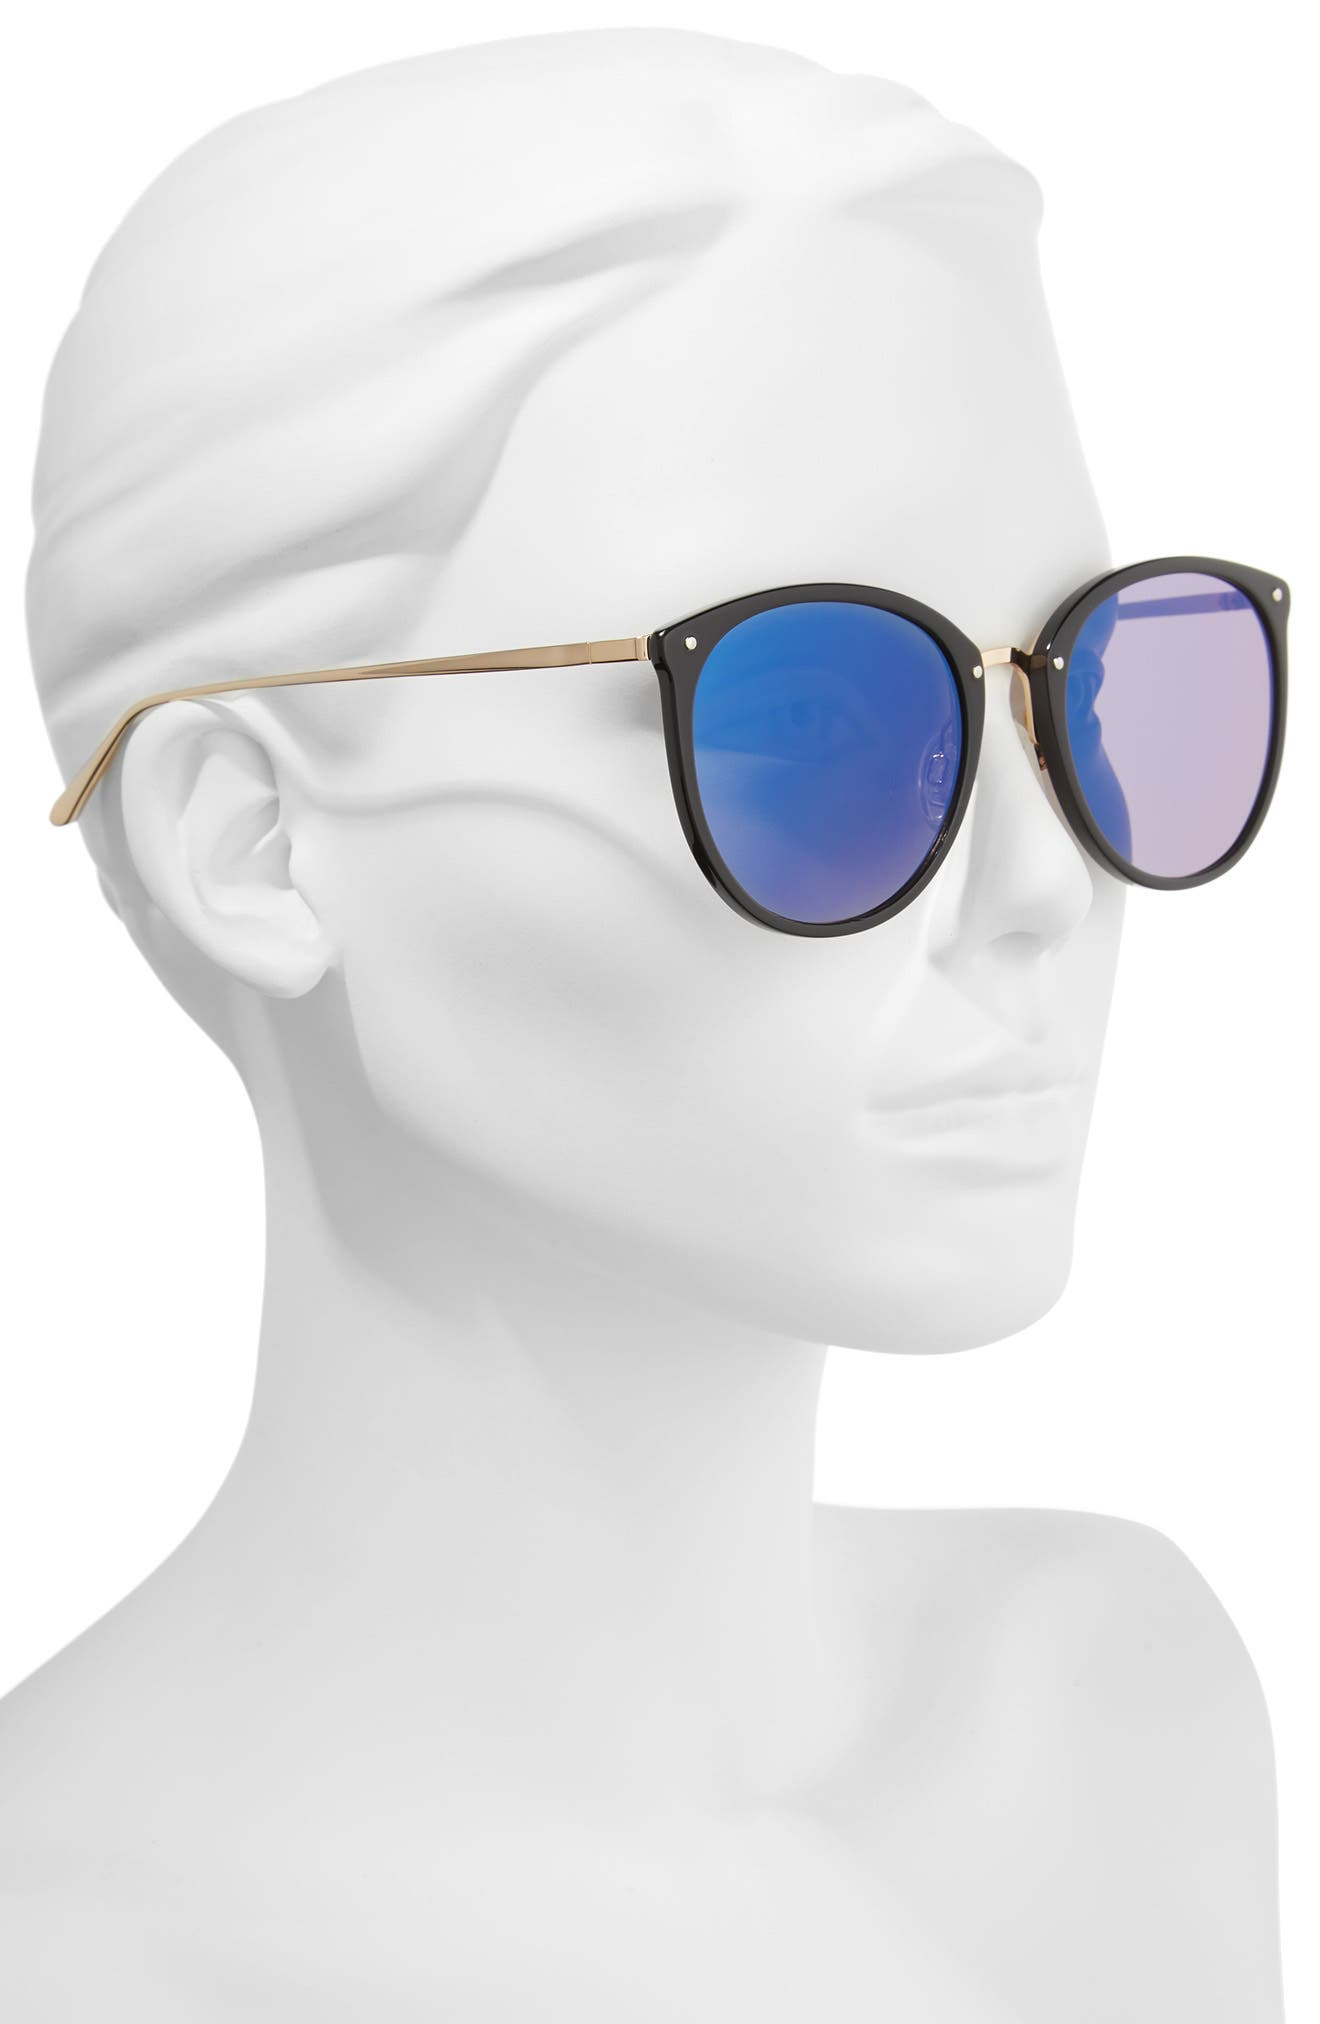 Key Largo 57mm Sunglasses,                             Alternate thumbnail 3, color,